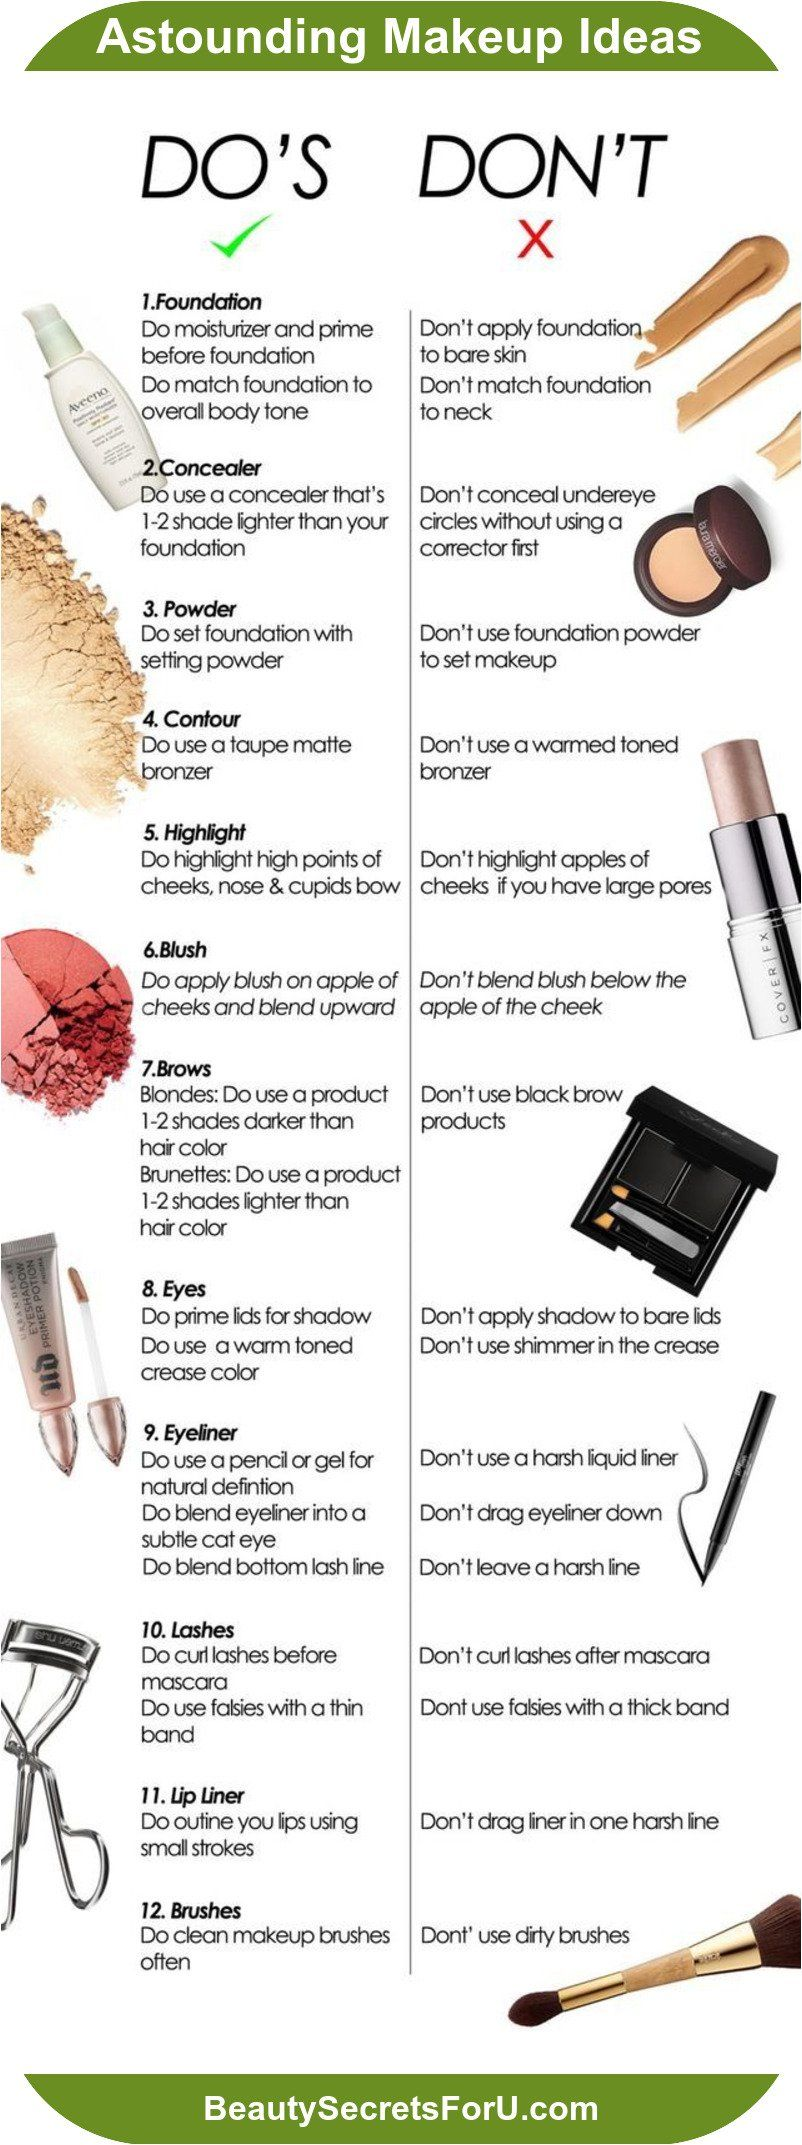 8 Charts That Will Assist You Become A Skin Care Specialist In 2020 Common Makeup Mistakes Makeup Brushes Guide Contouring Makeup Mistakes